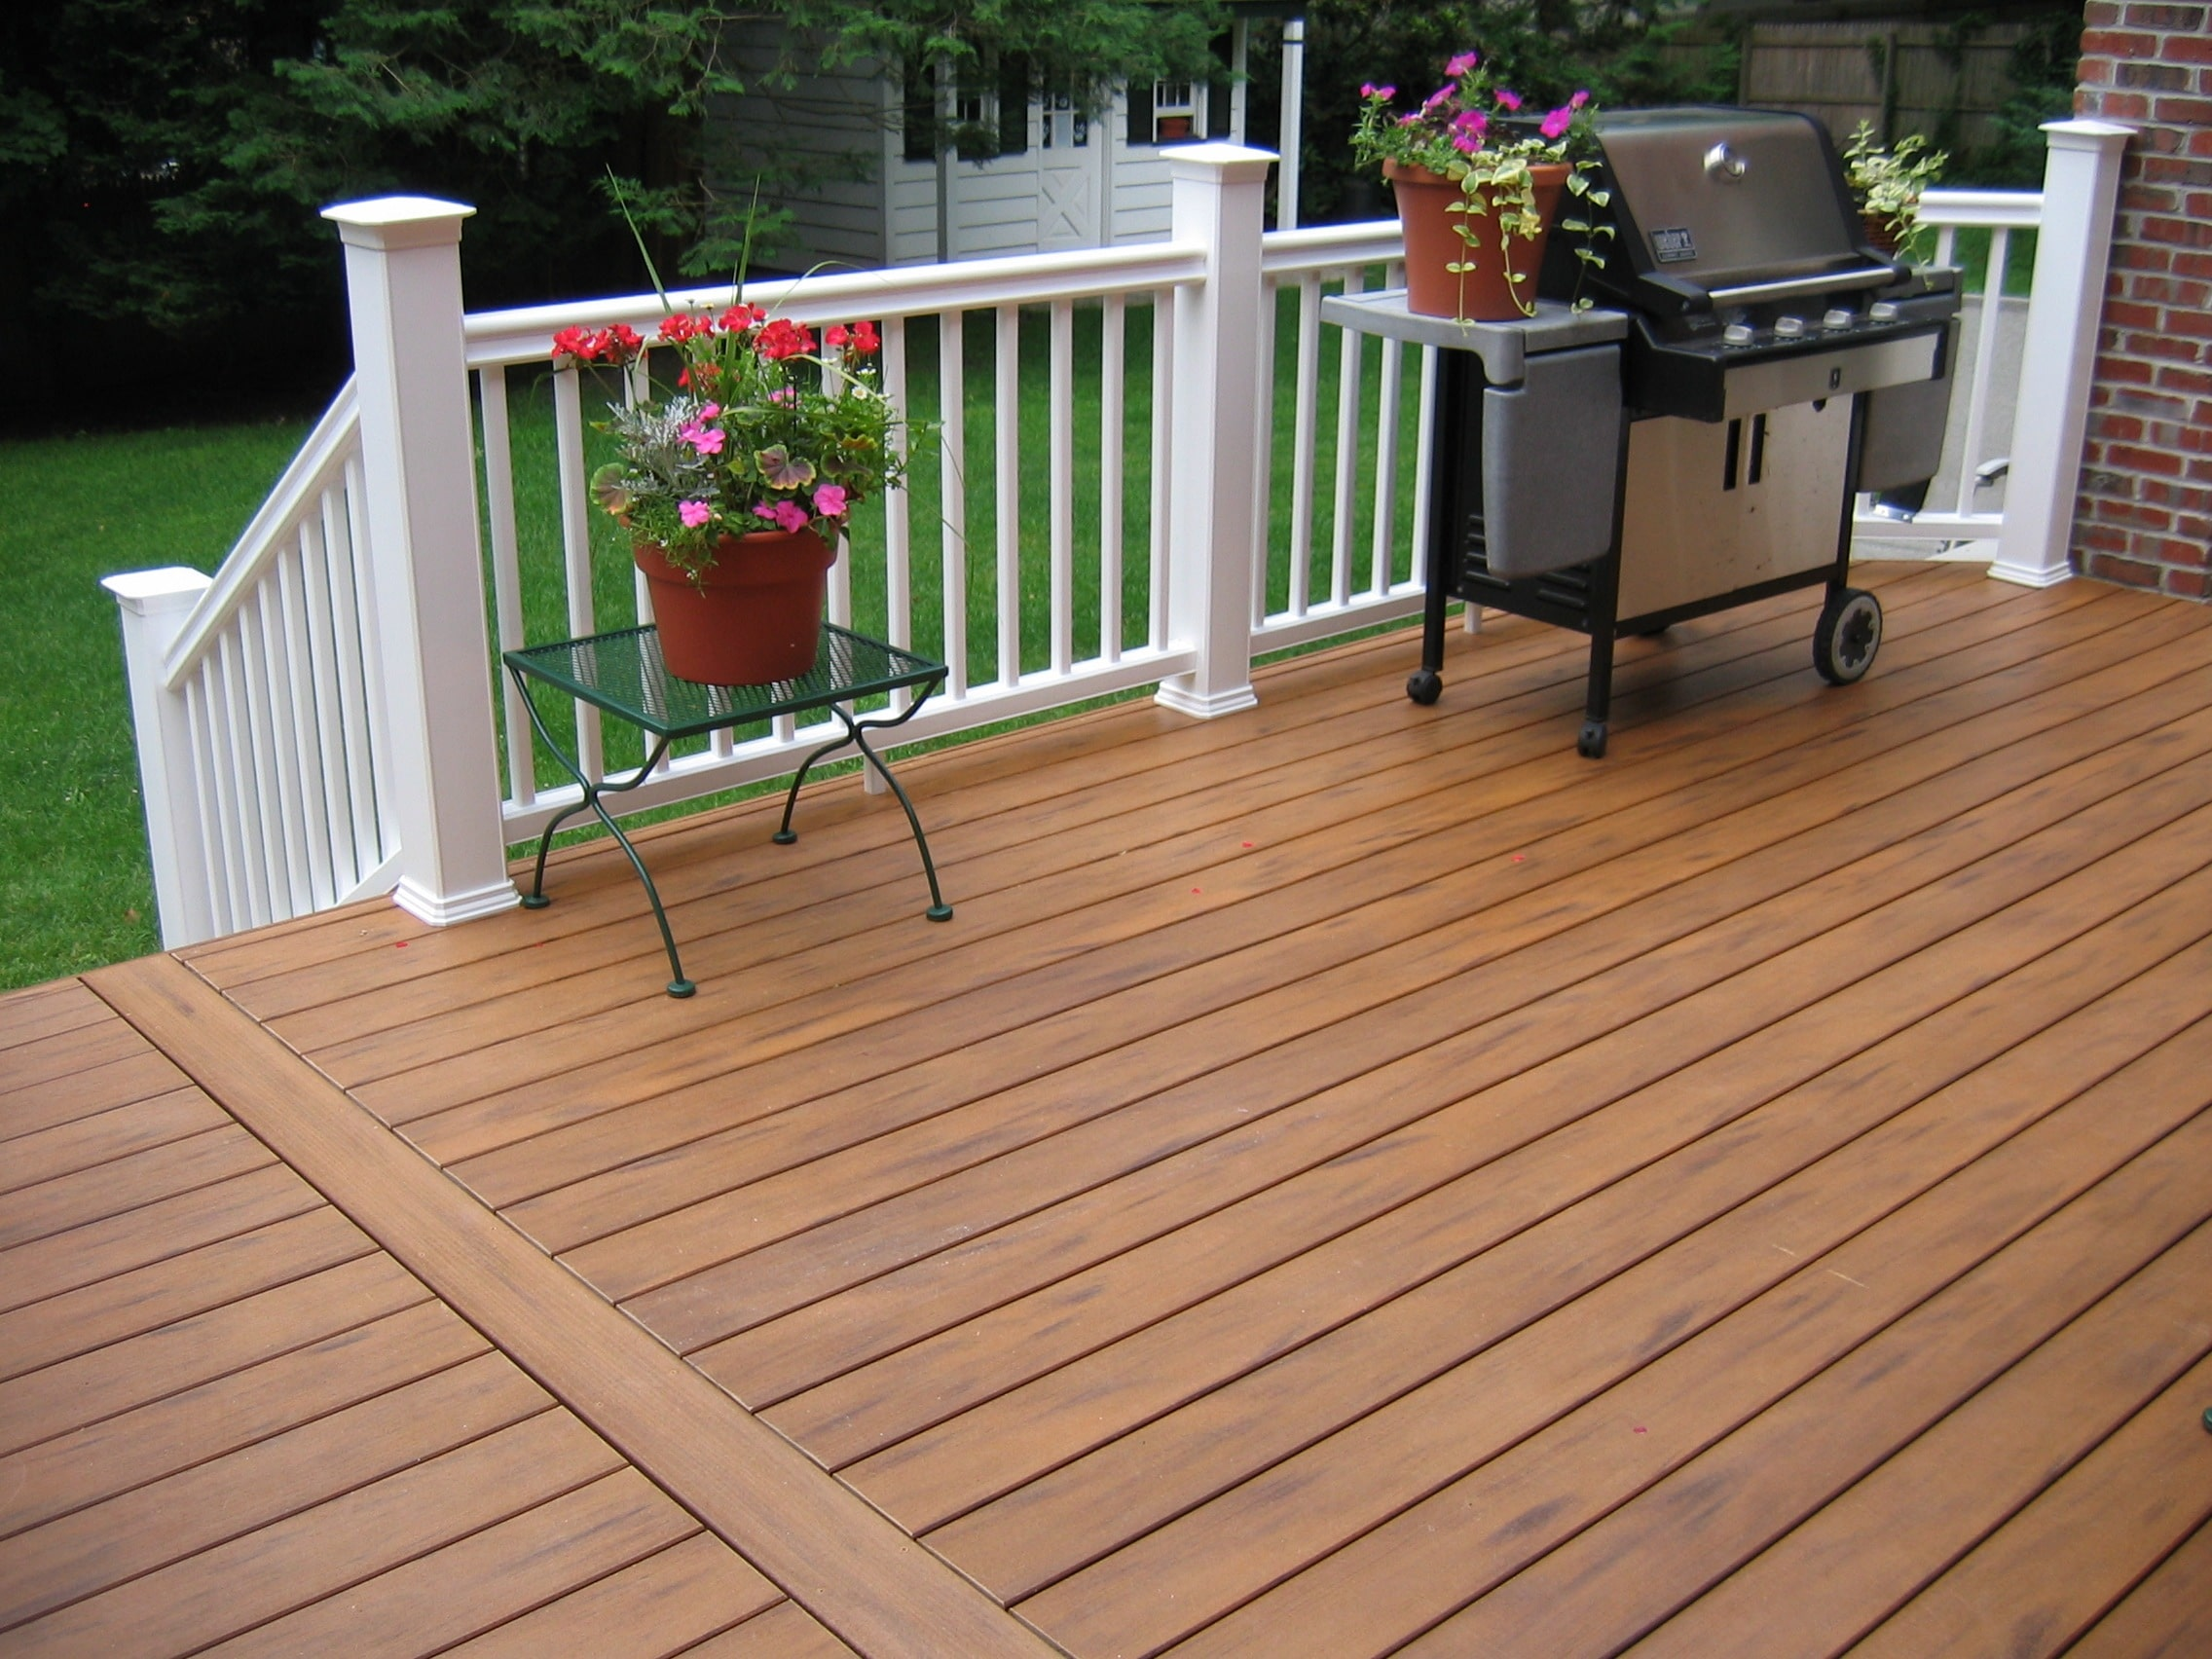 Decks railings shiretown home improvements glass - Deck ideas for home ...